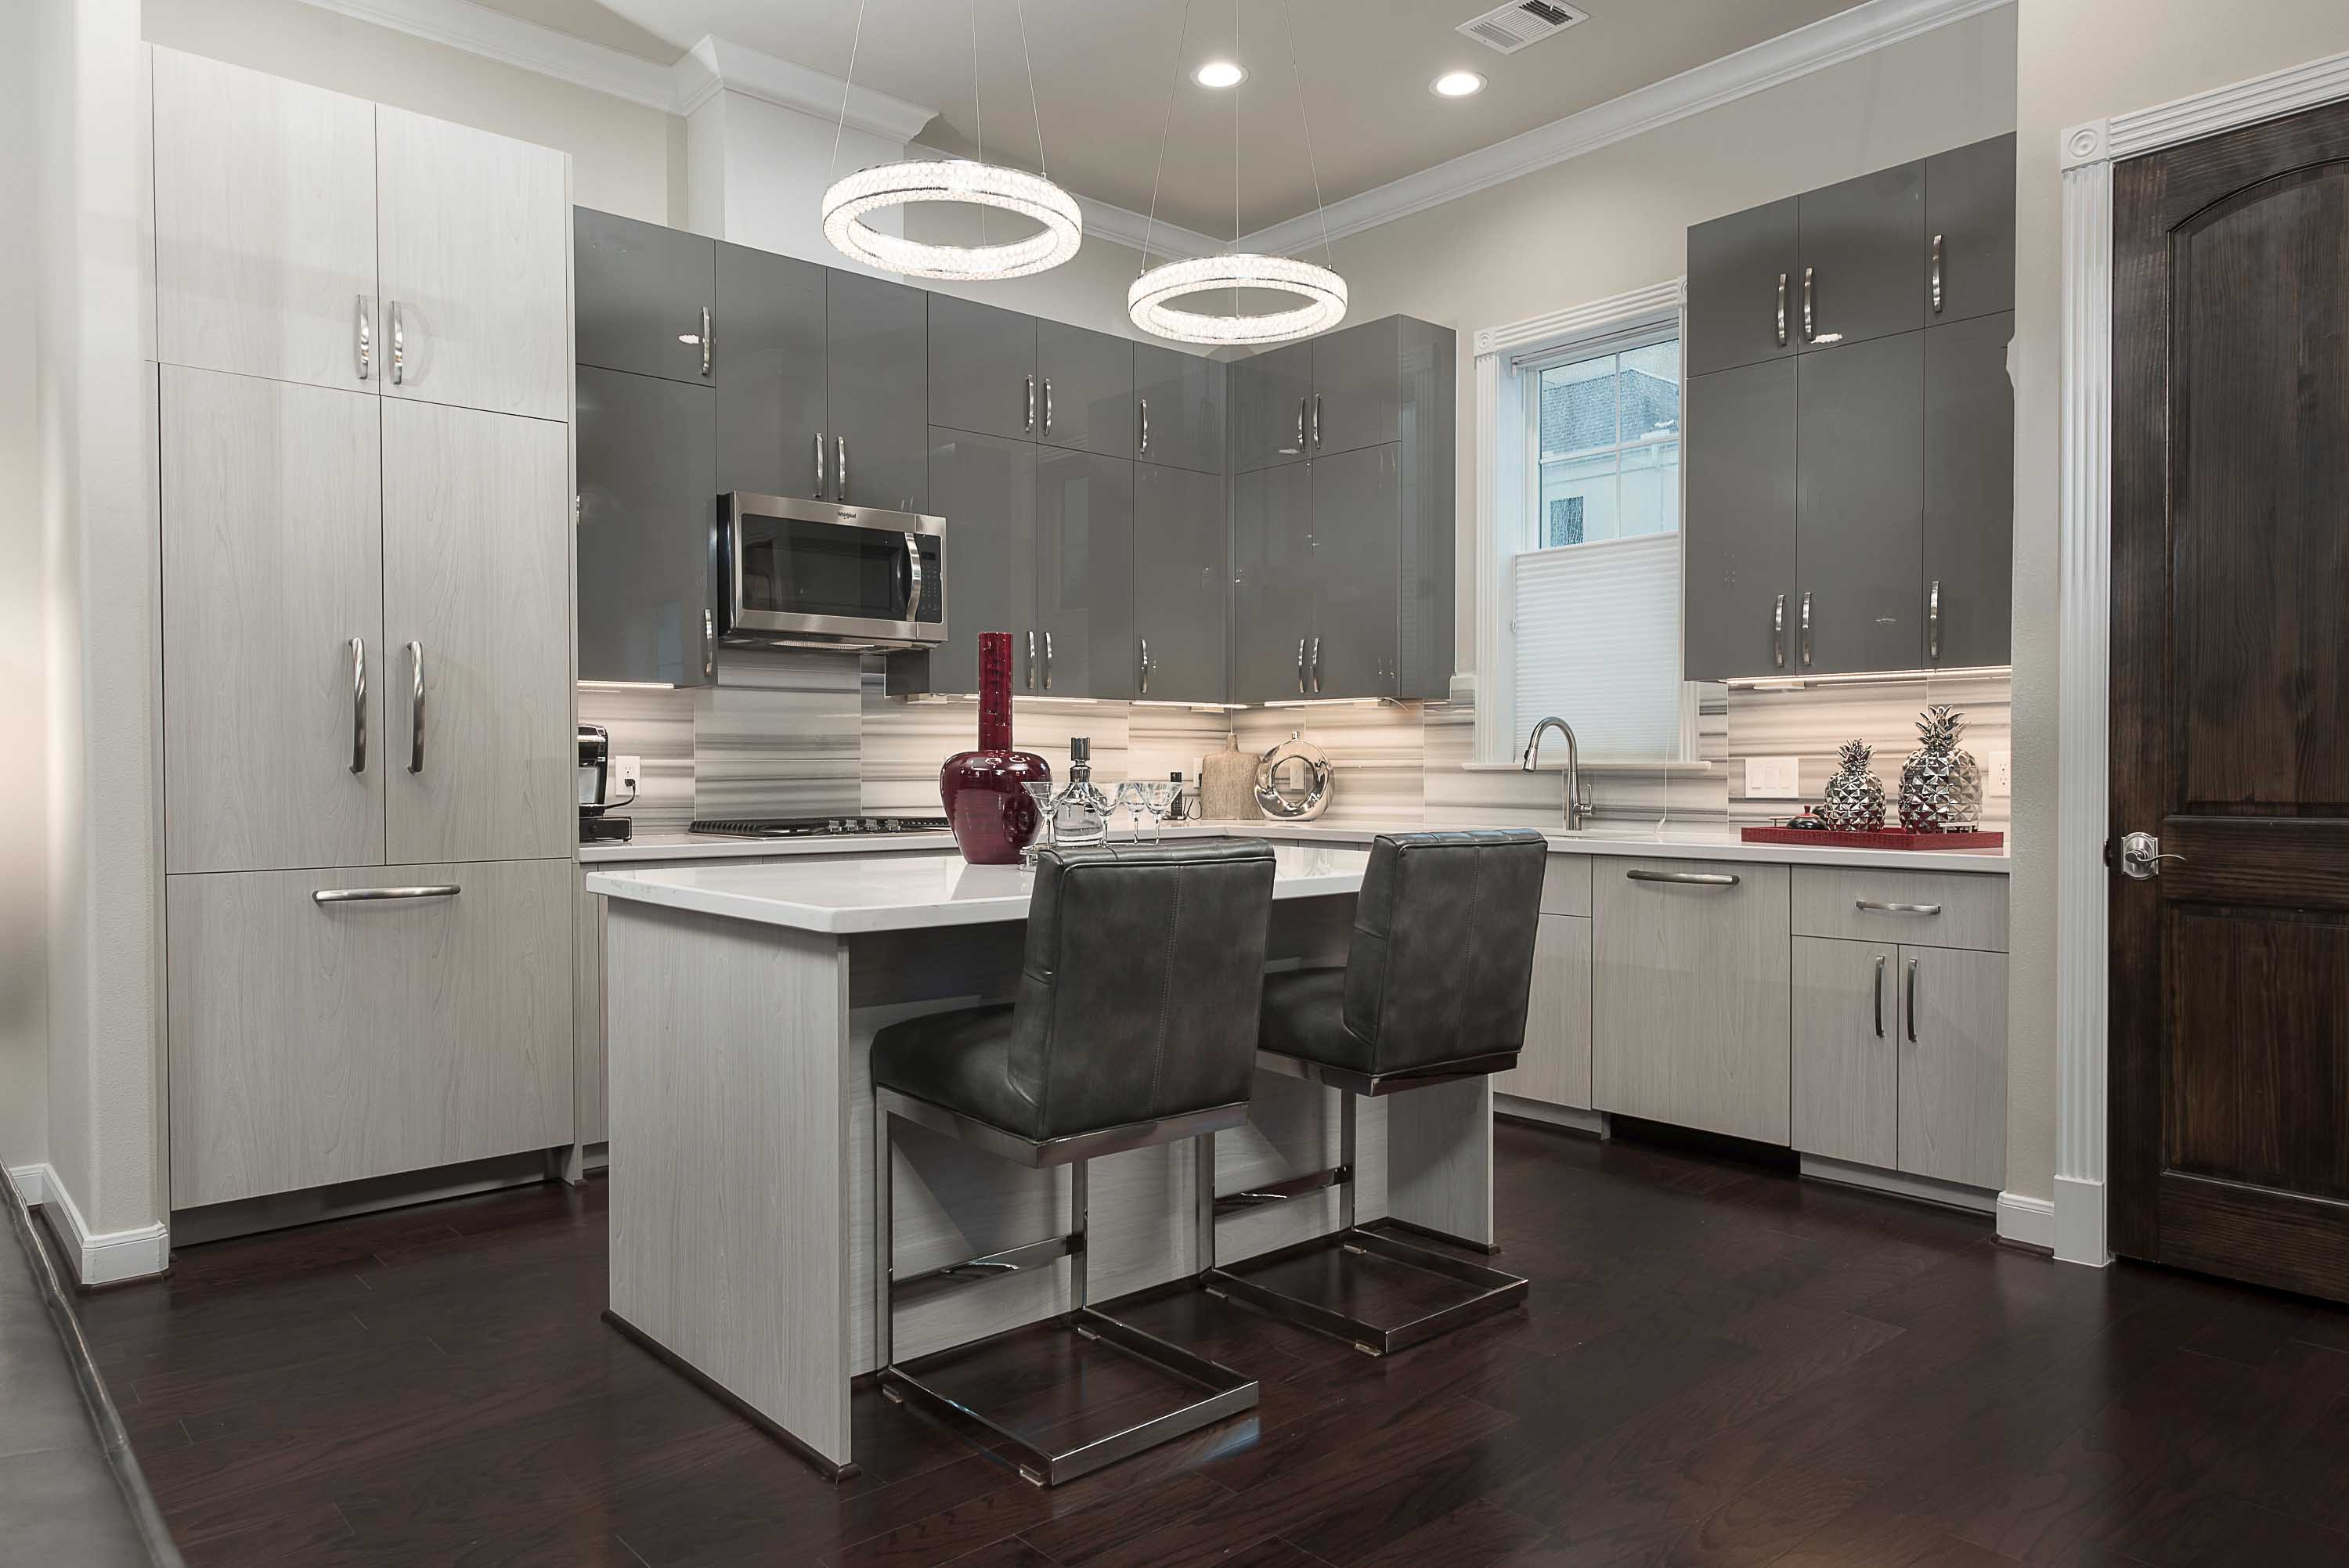 Interior and Exterior Designs for New Homes in Houston – Surge Homes